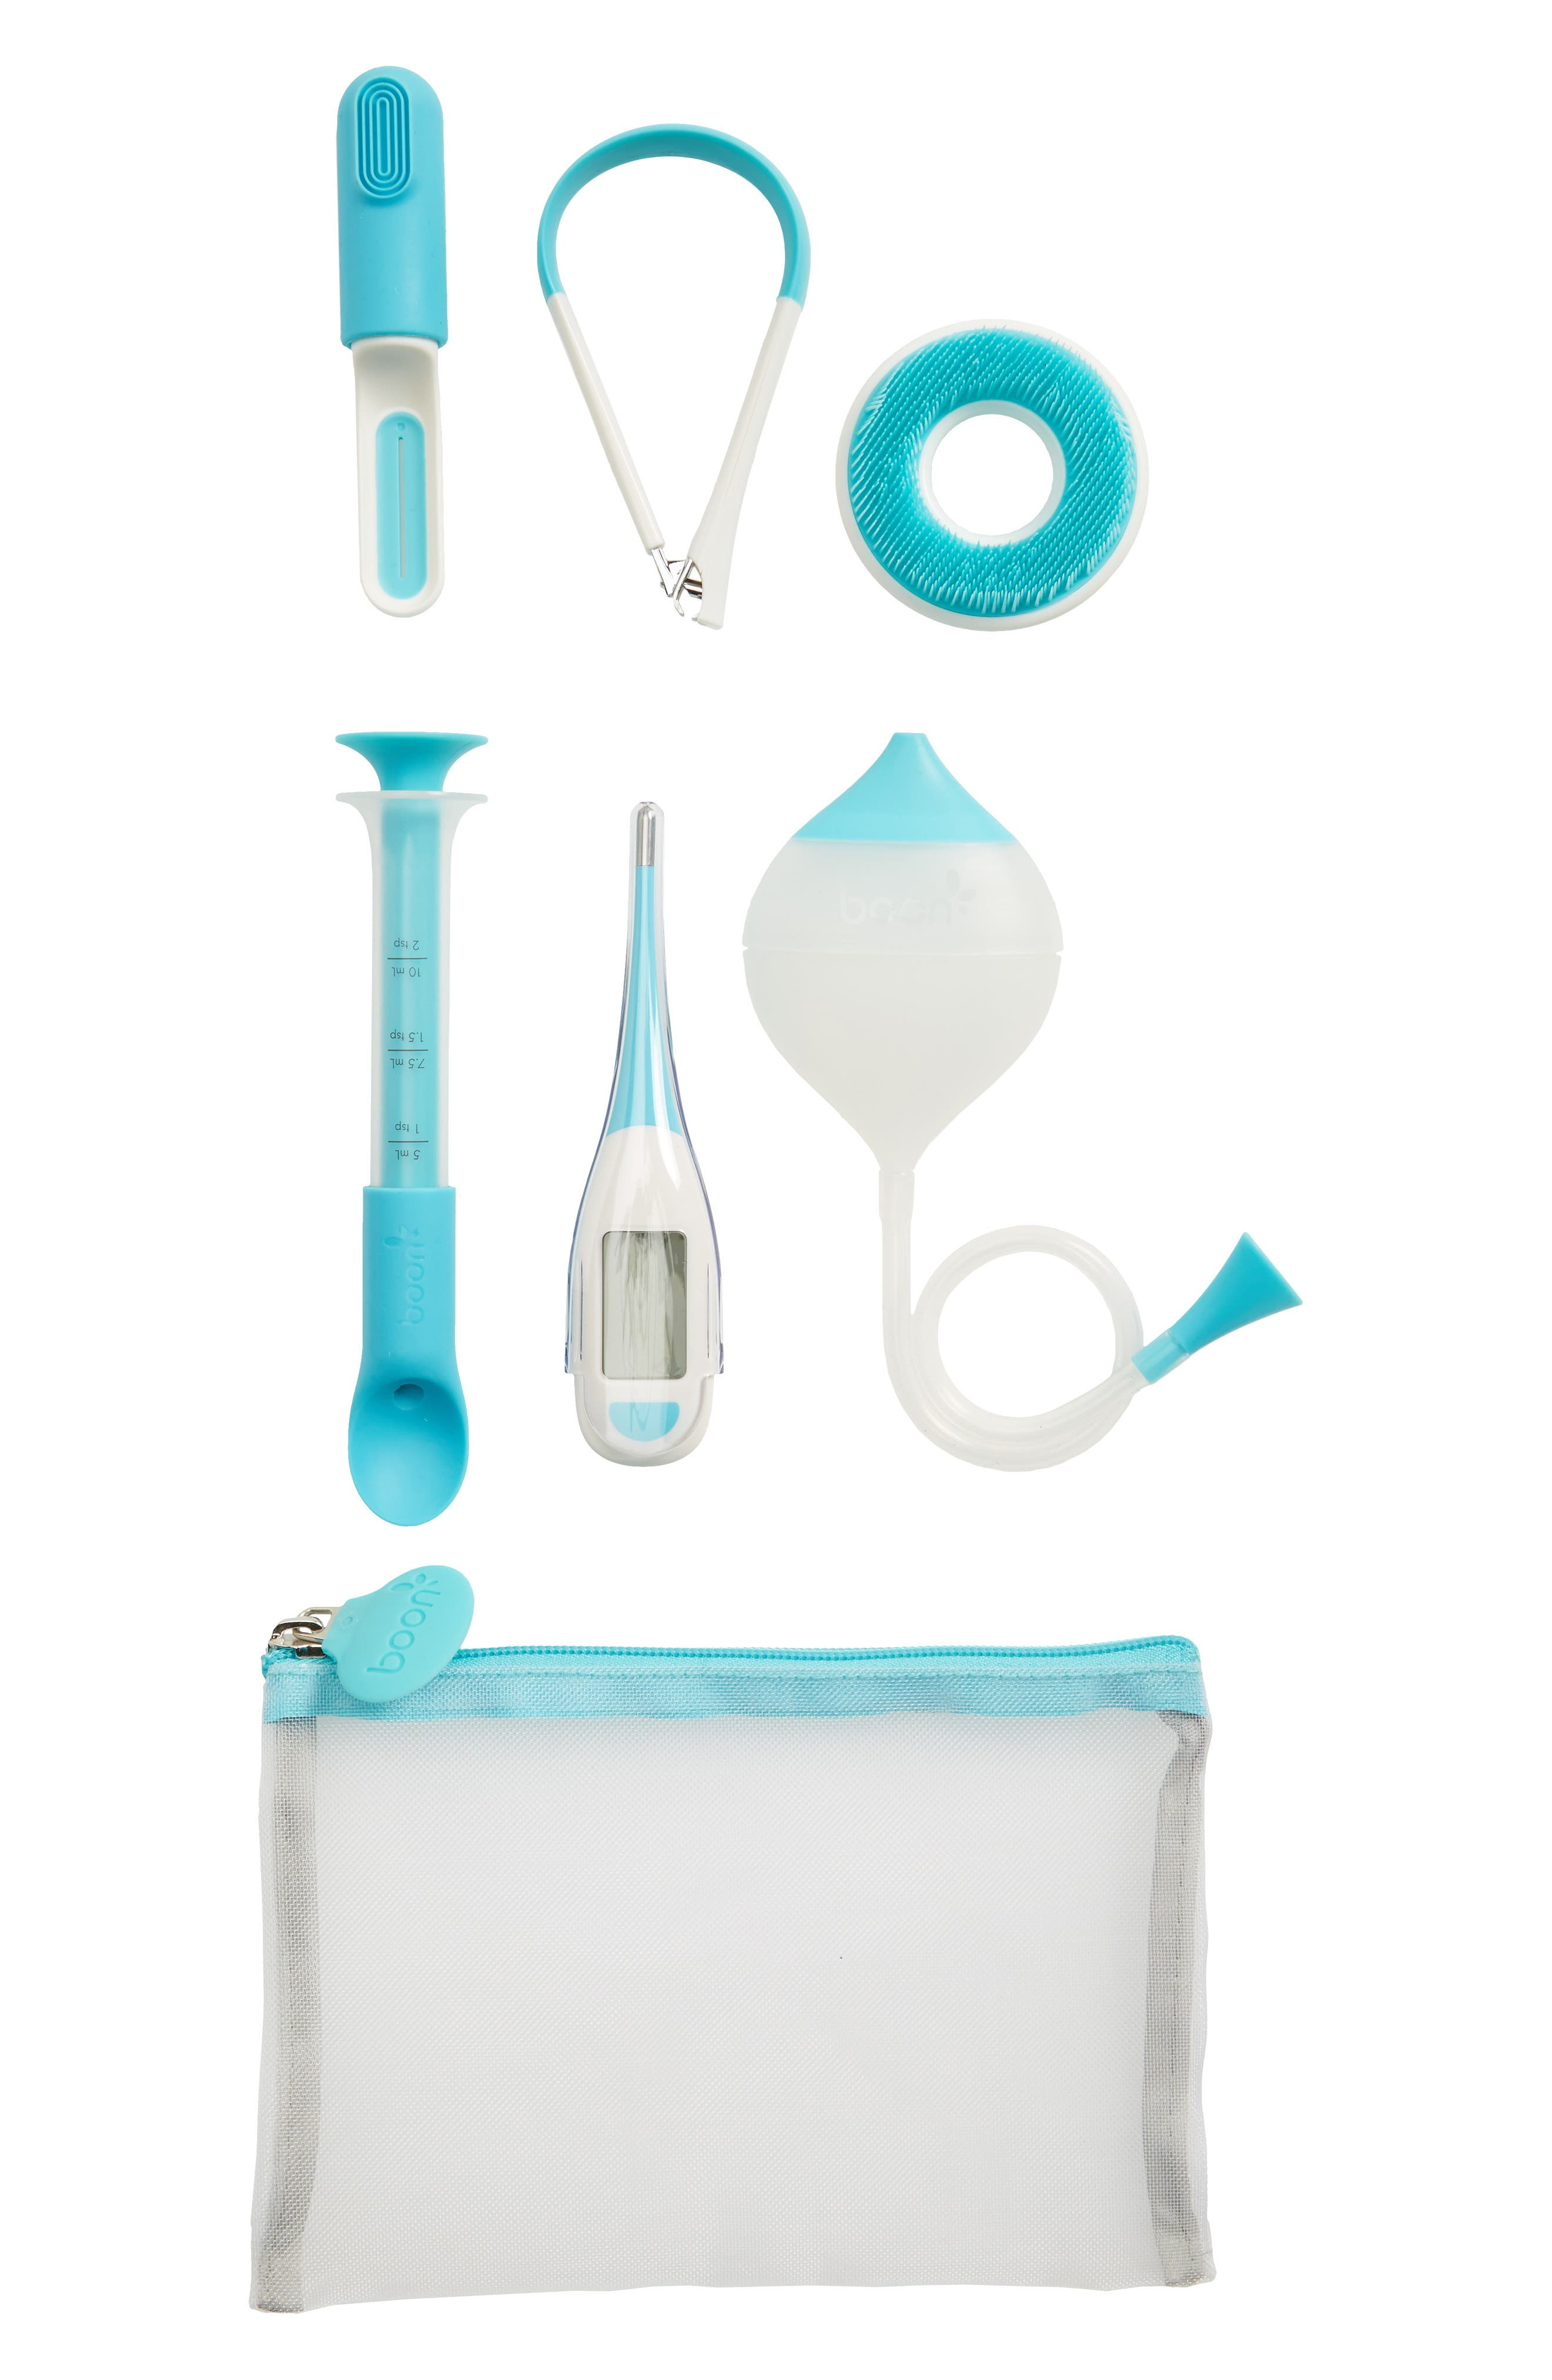 Care 6-Piece Health & Grooming Kit,                         Main,                         color, White